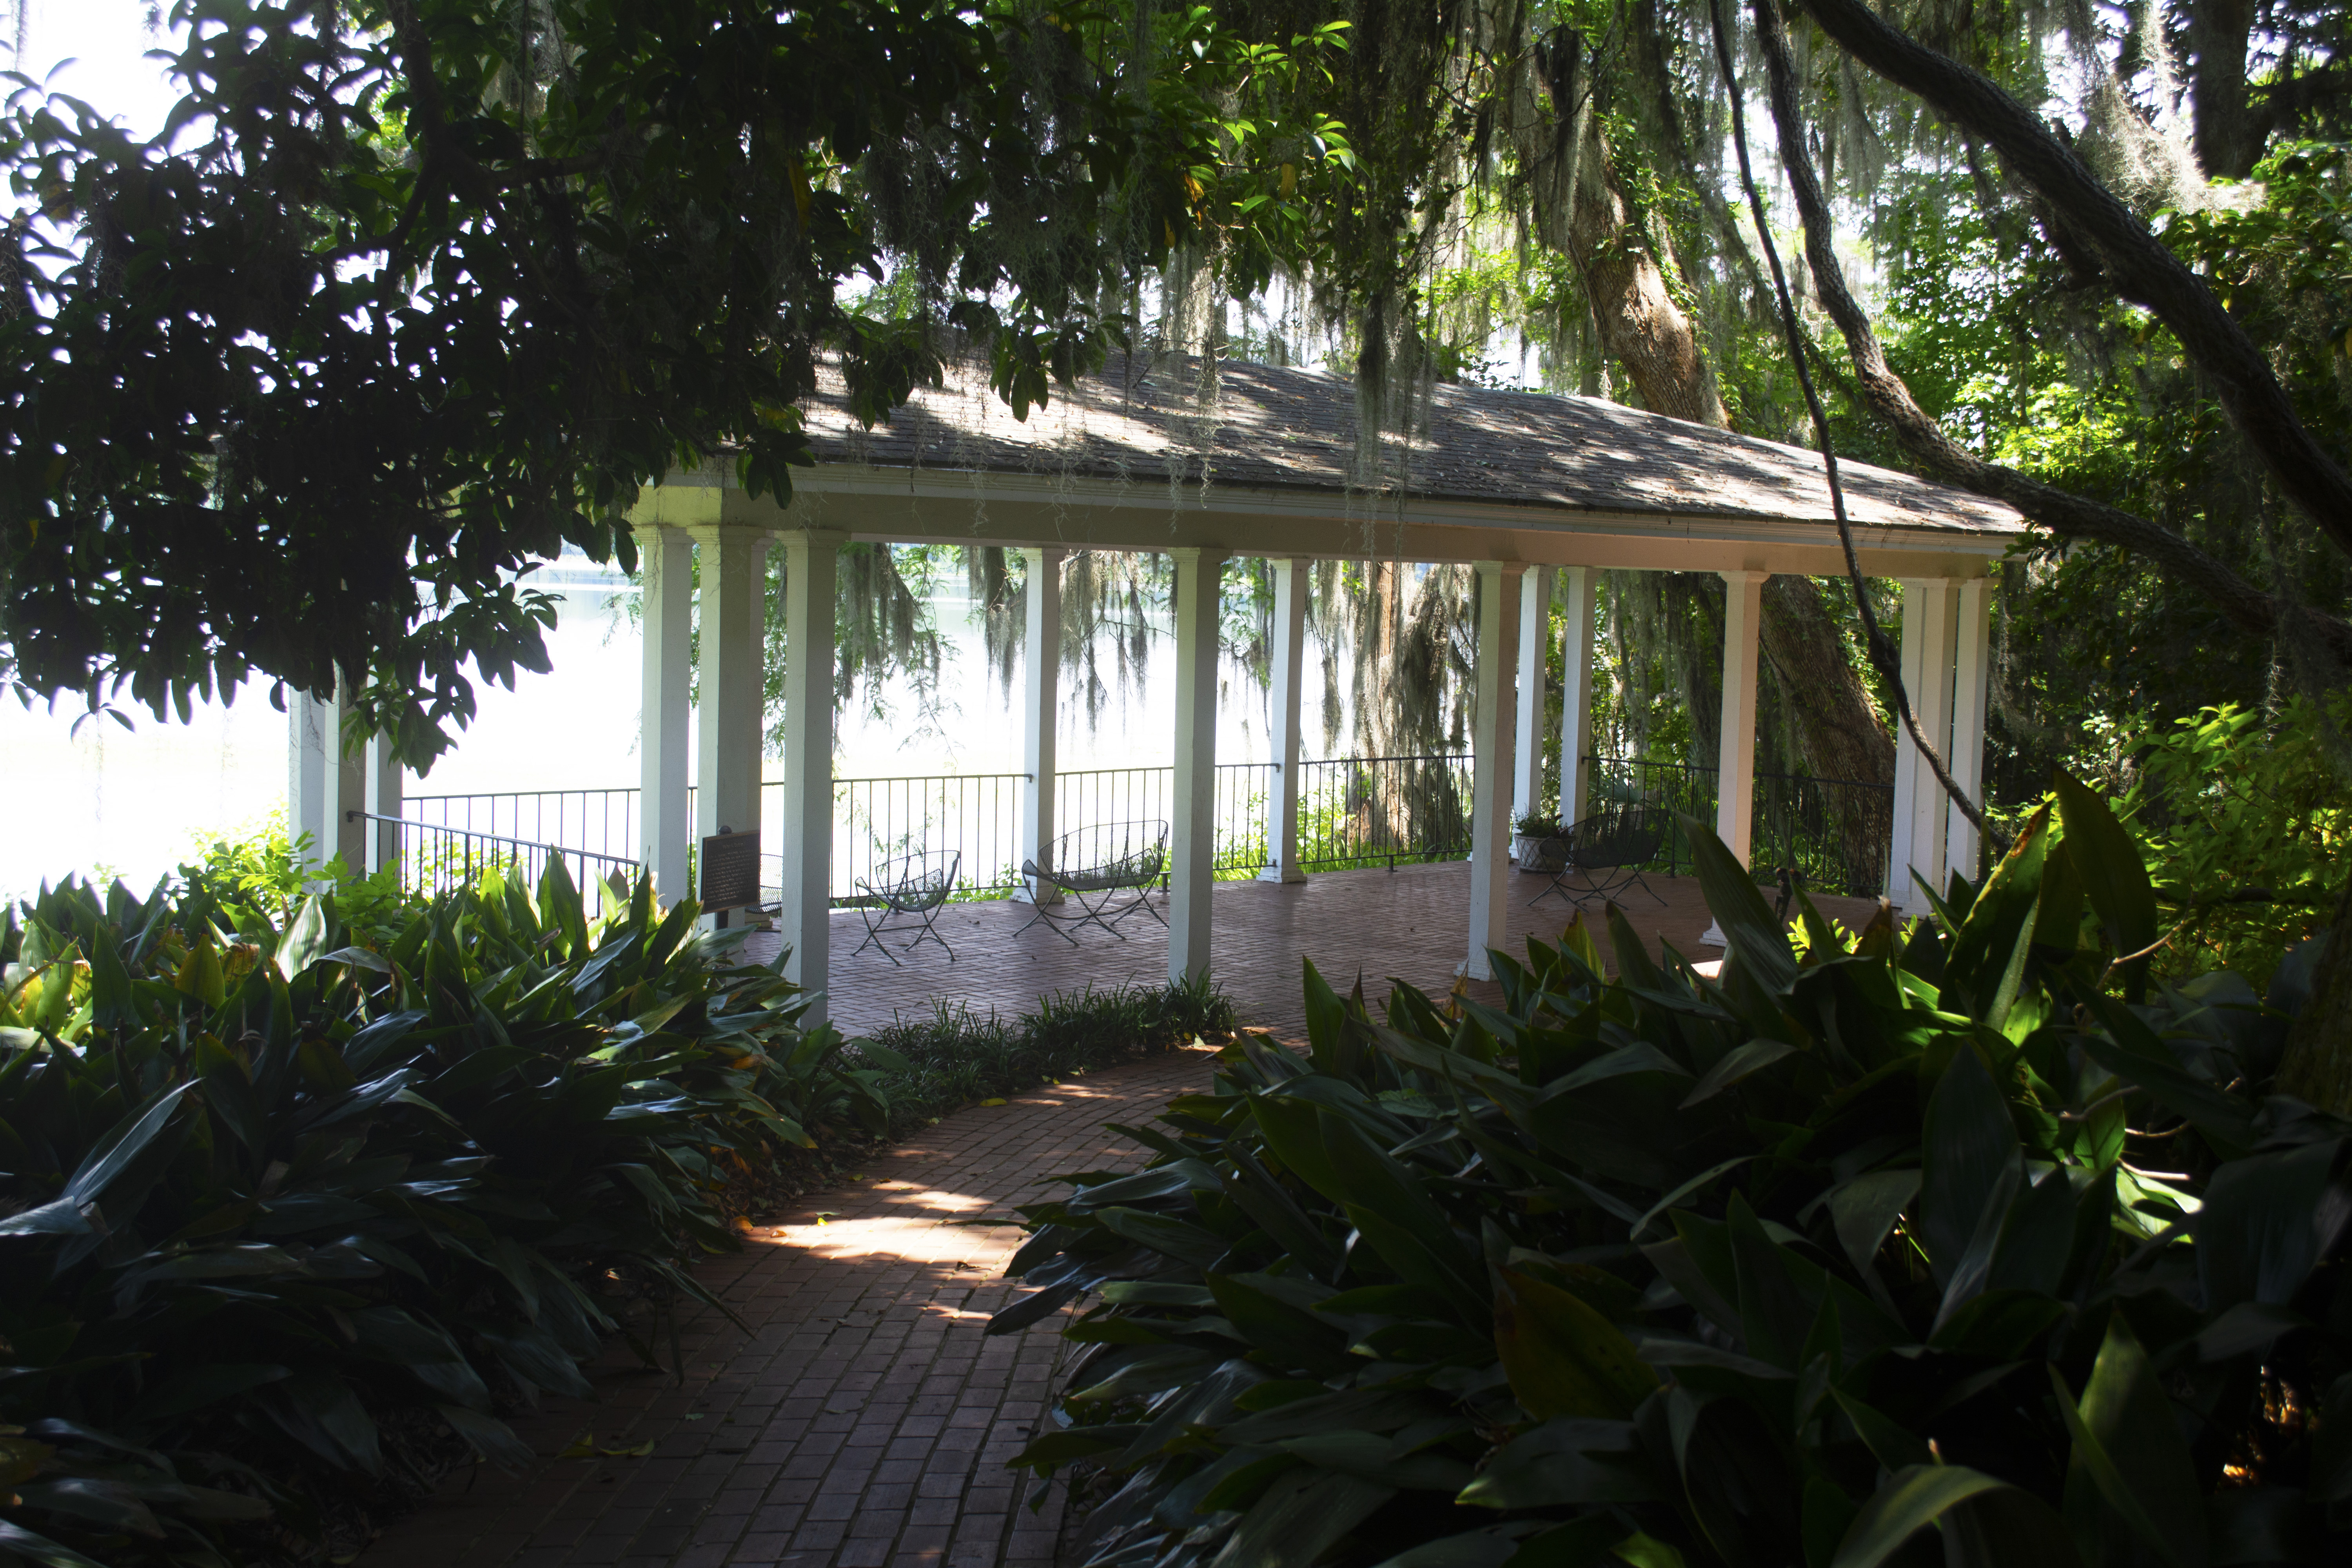 Gazebo by the lake at Alfred B. McCabe Garden State Park in Tallahassee, FL